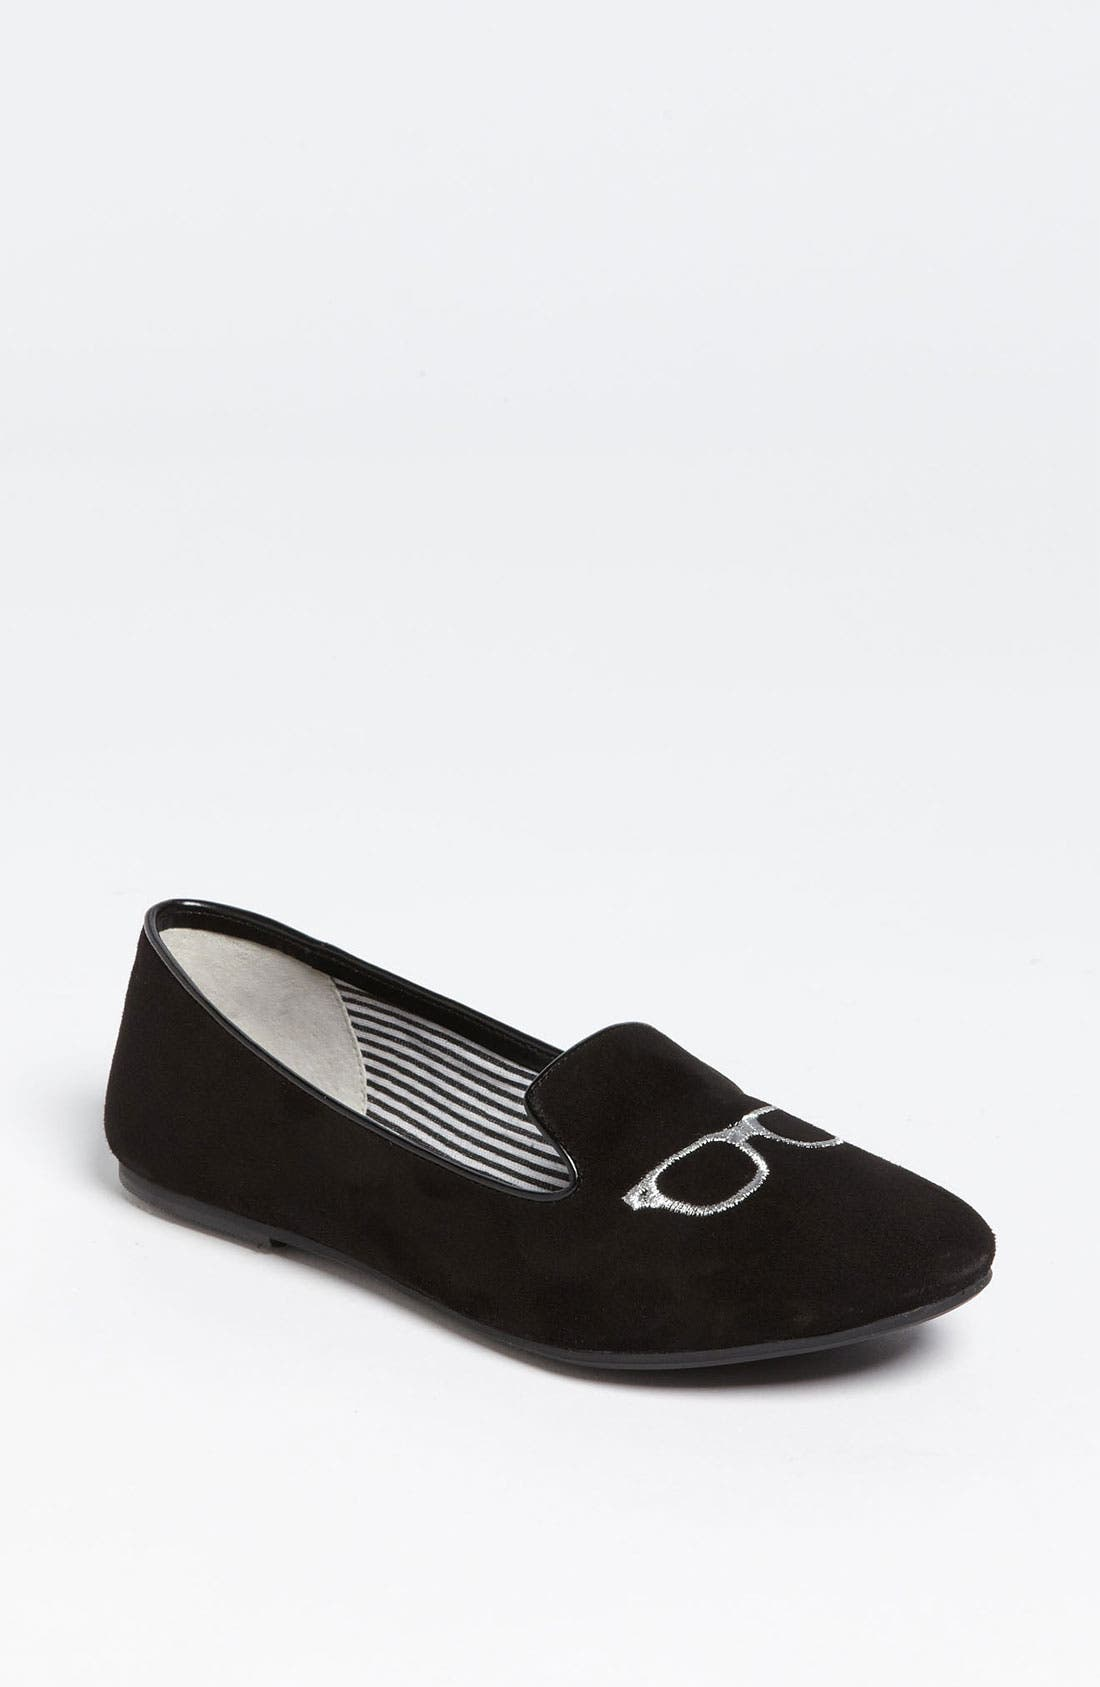 Alternate Image 1 Selected - BP. 'Milten' Loafer